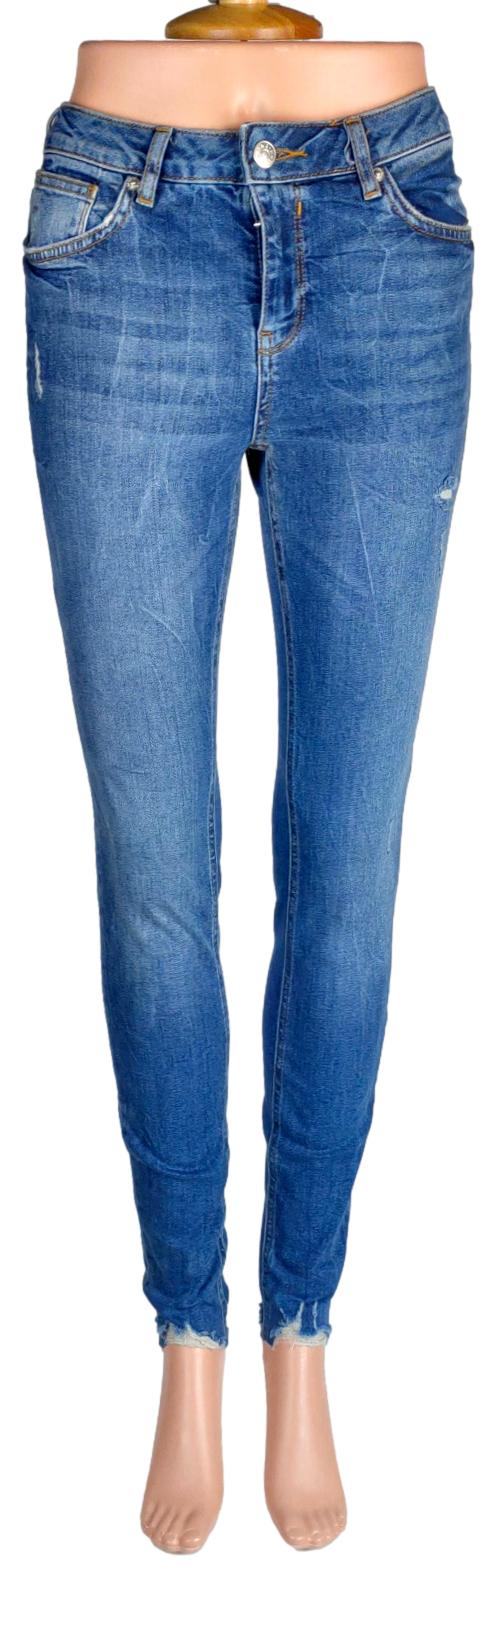 Jean NA-KD - Taille 34